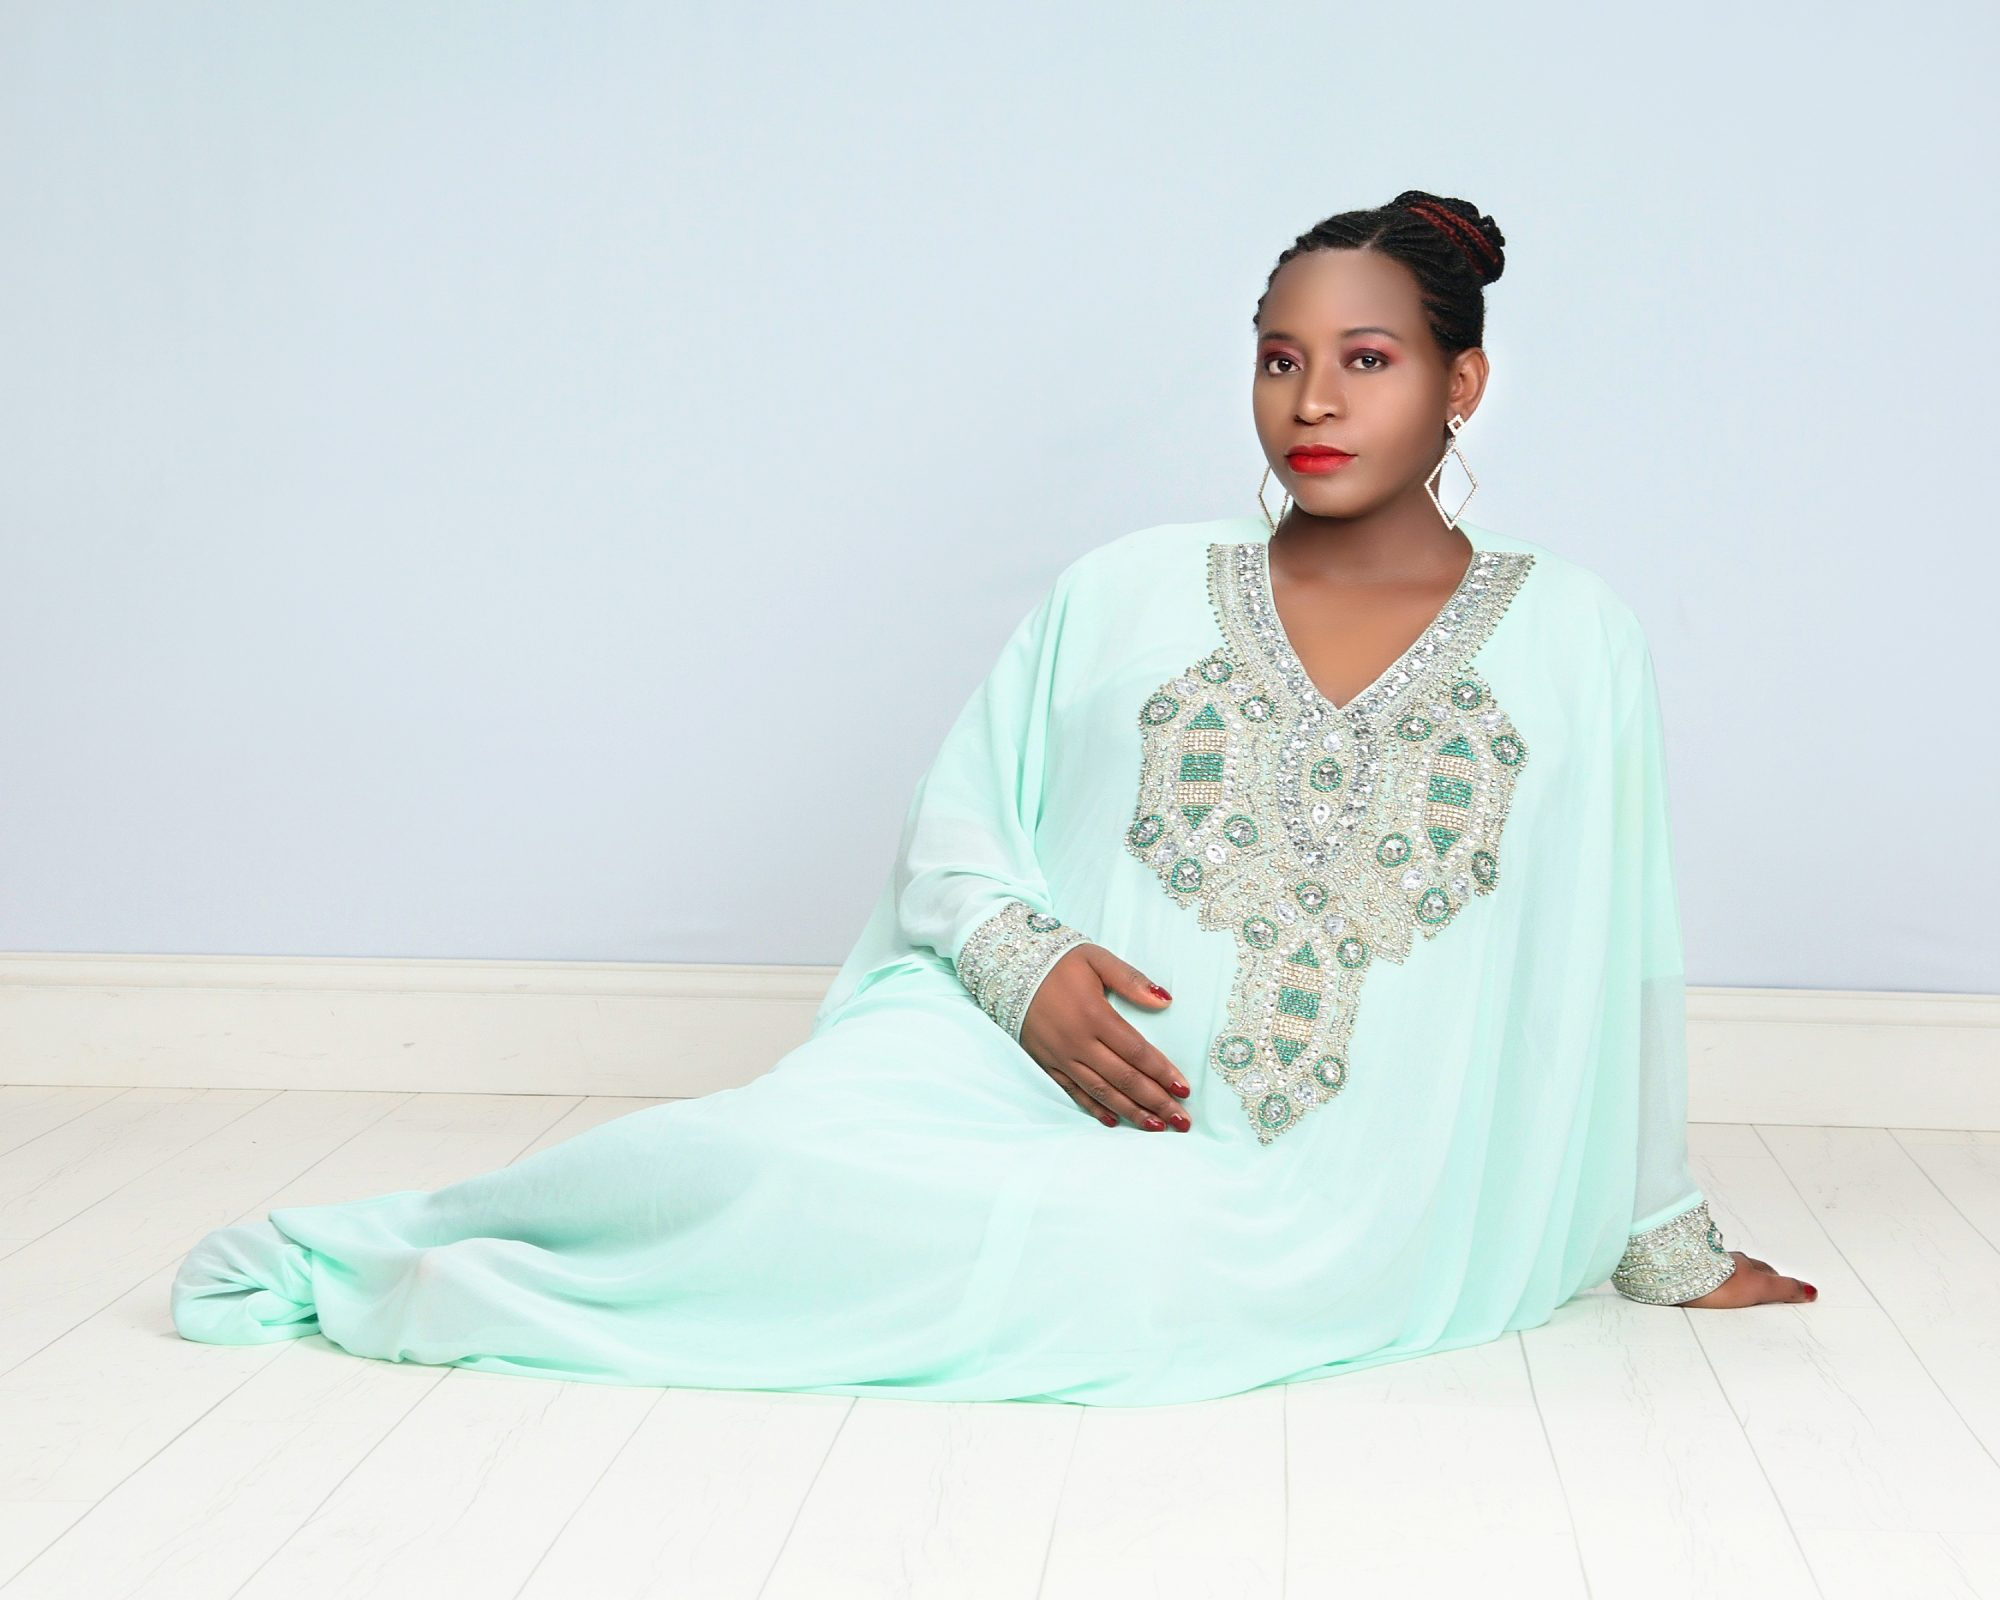 Exclusive: Myra Maimoh Glows In Stunning New Maternity Pictures